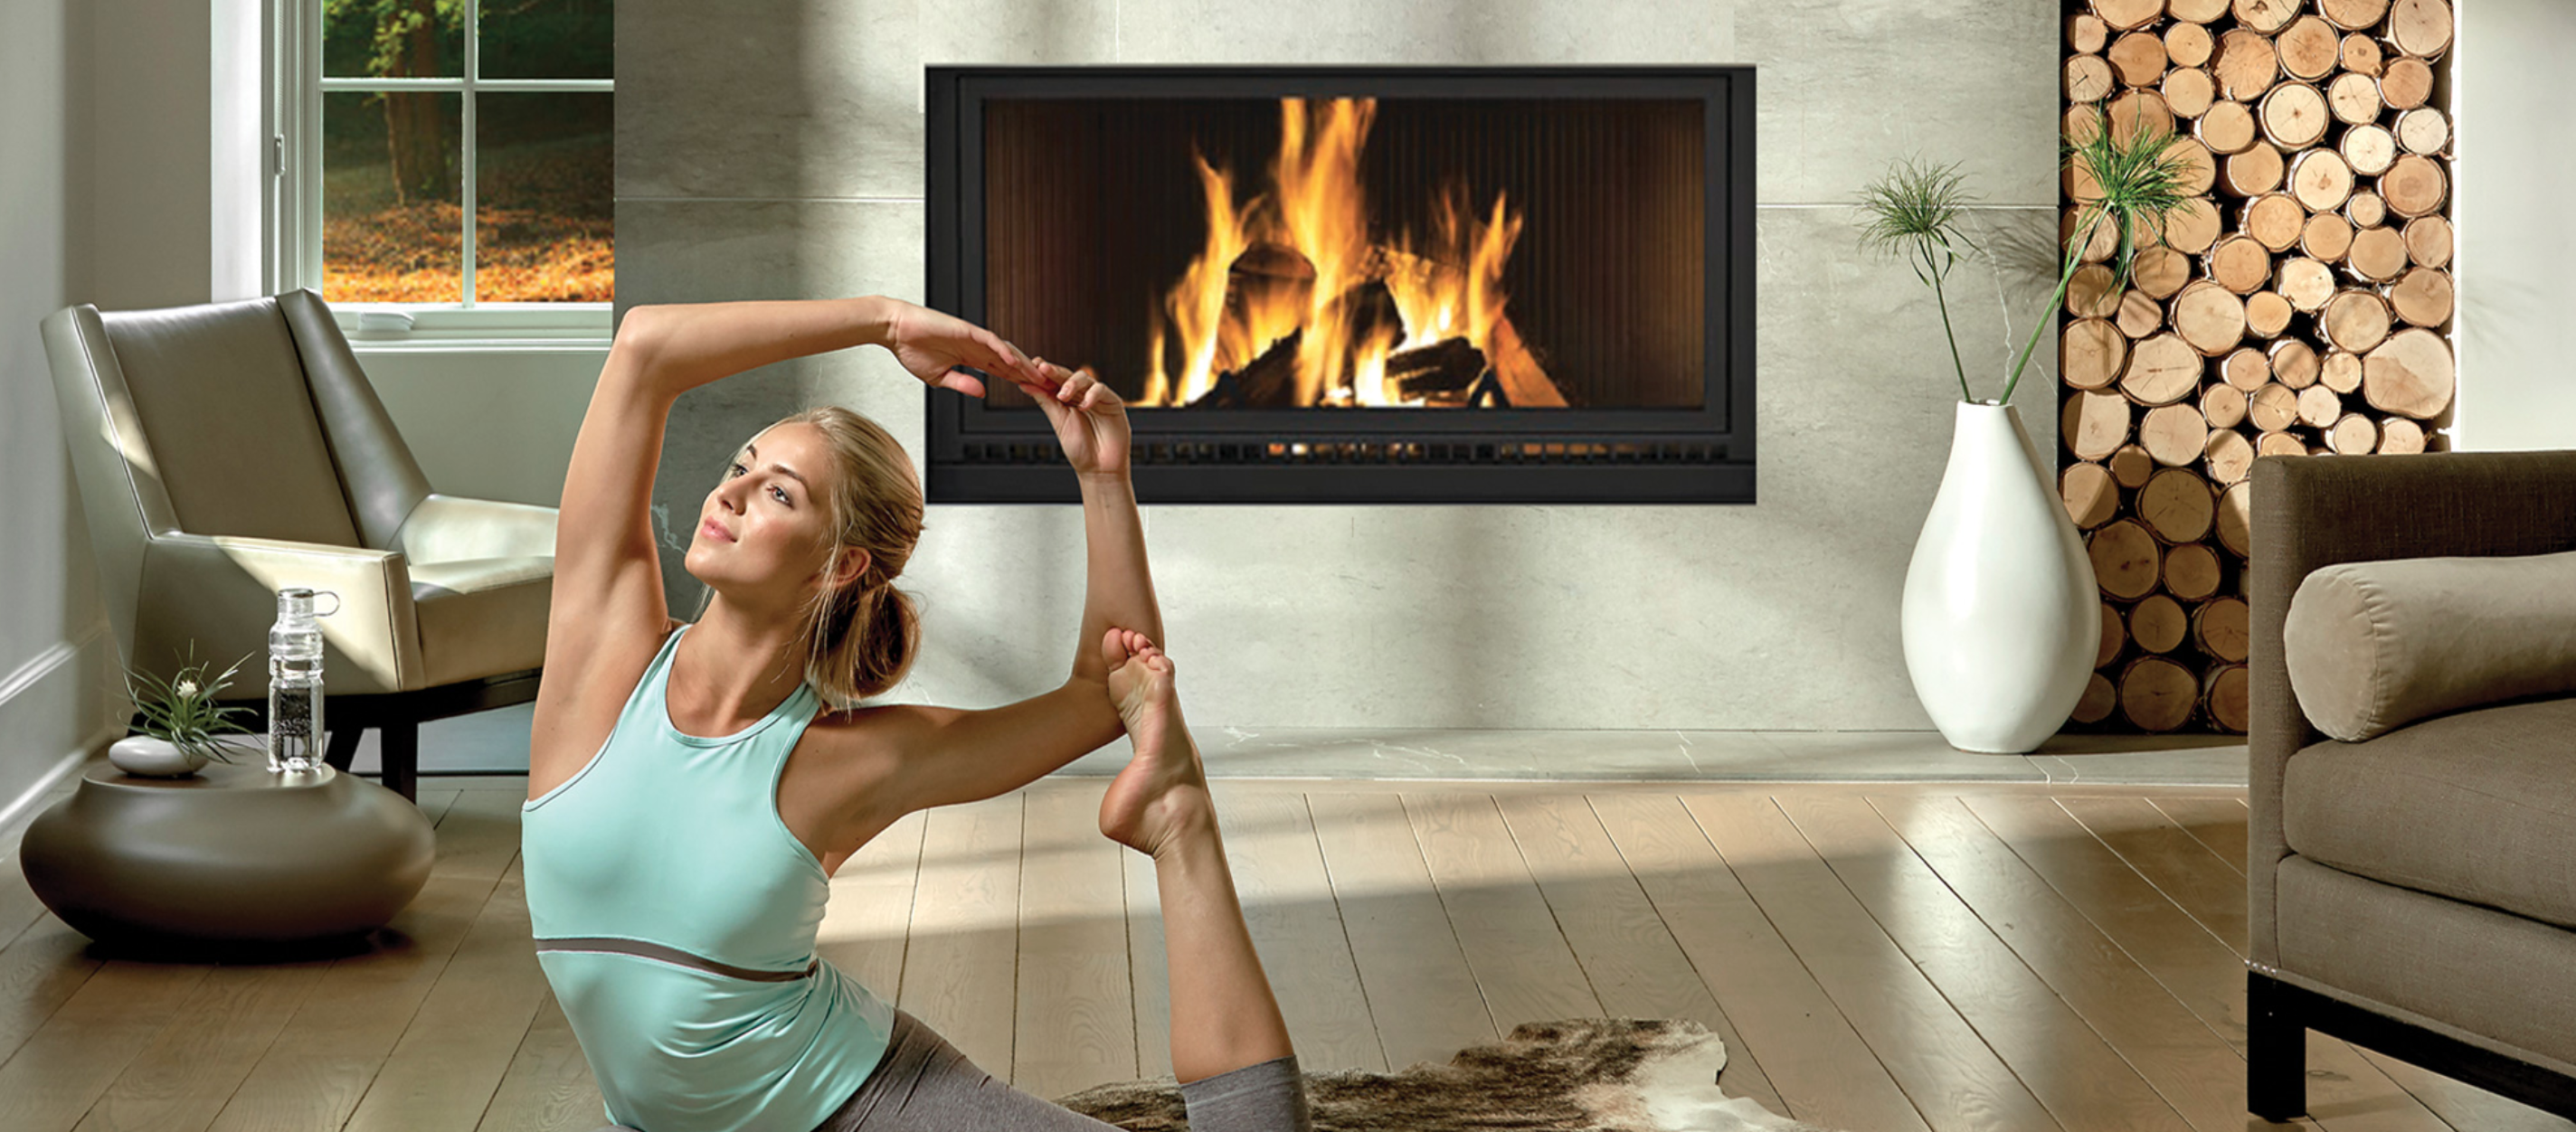 A woman in a yoga pose in front of a Napoleon fireplace.